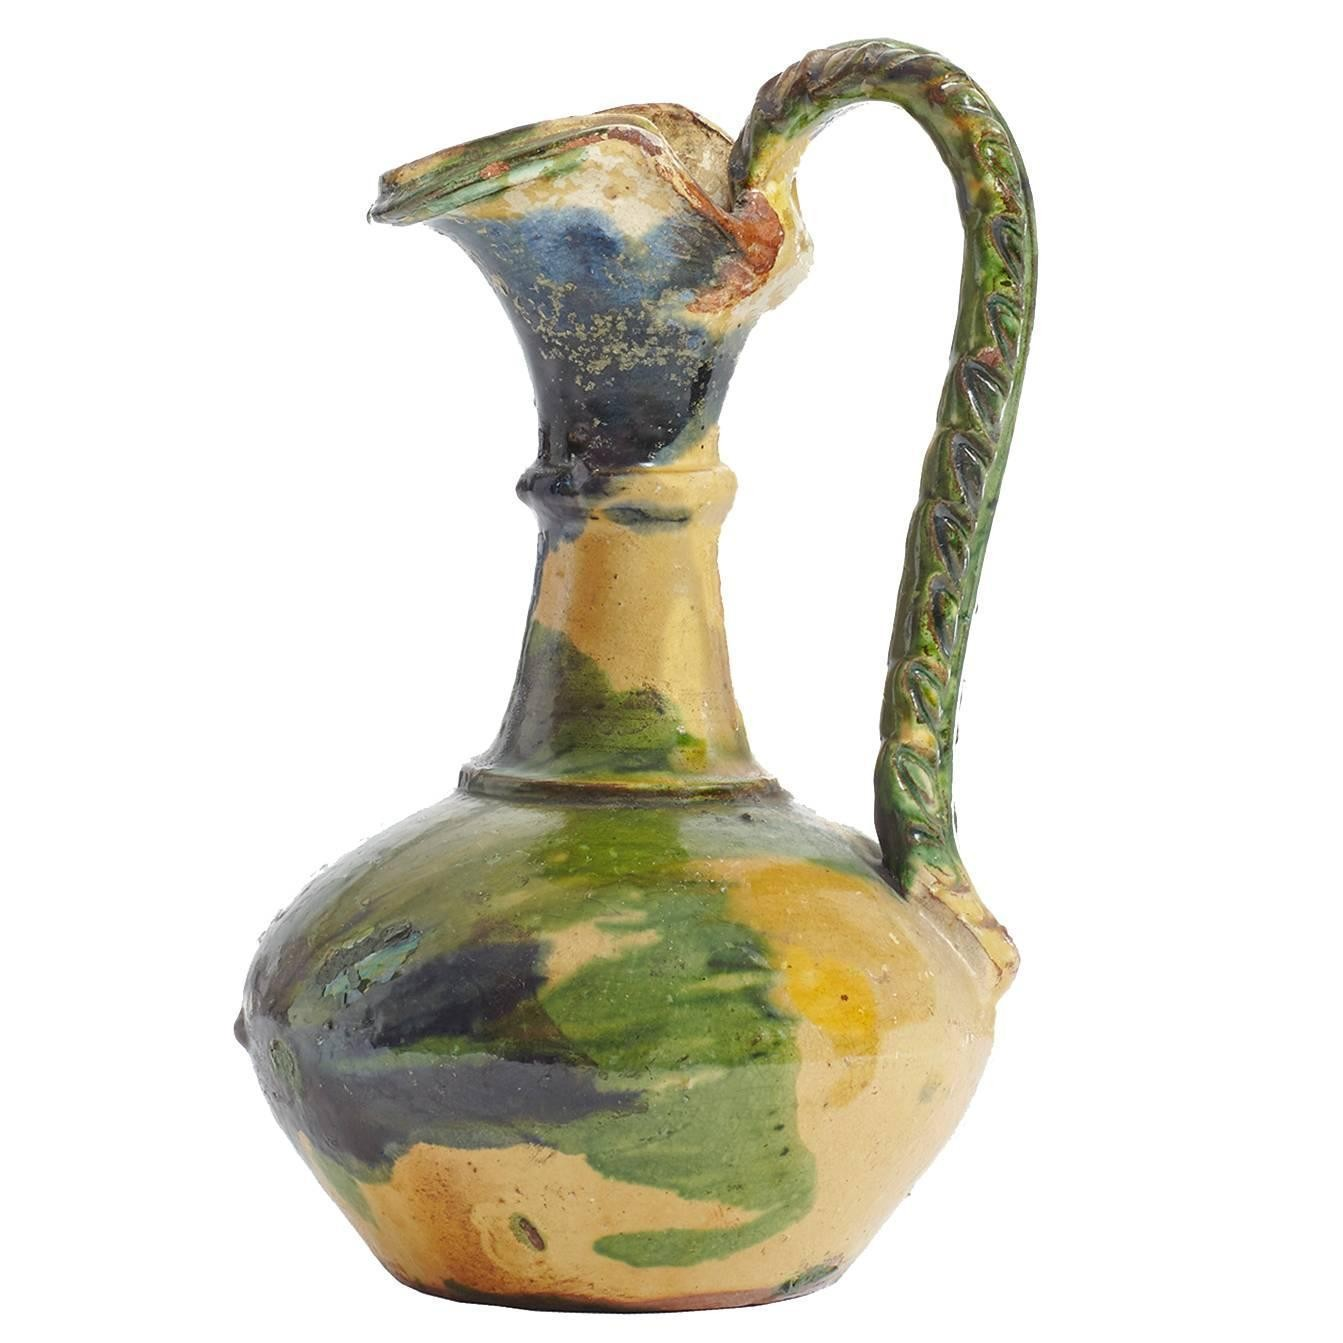 Handmade Antique Ceramic Water Carafe, Typical of the Calabria Region in Italy, $282.51; 1stdibs.